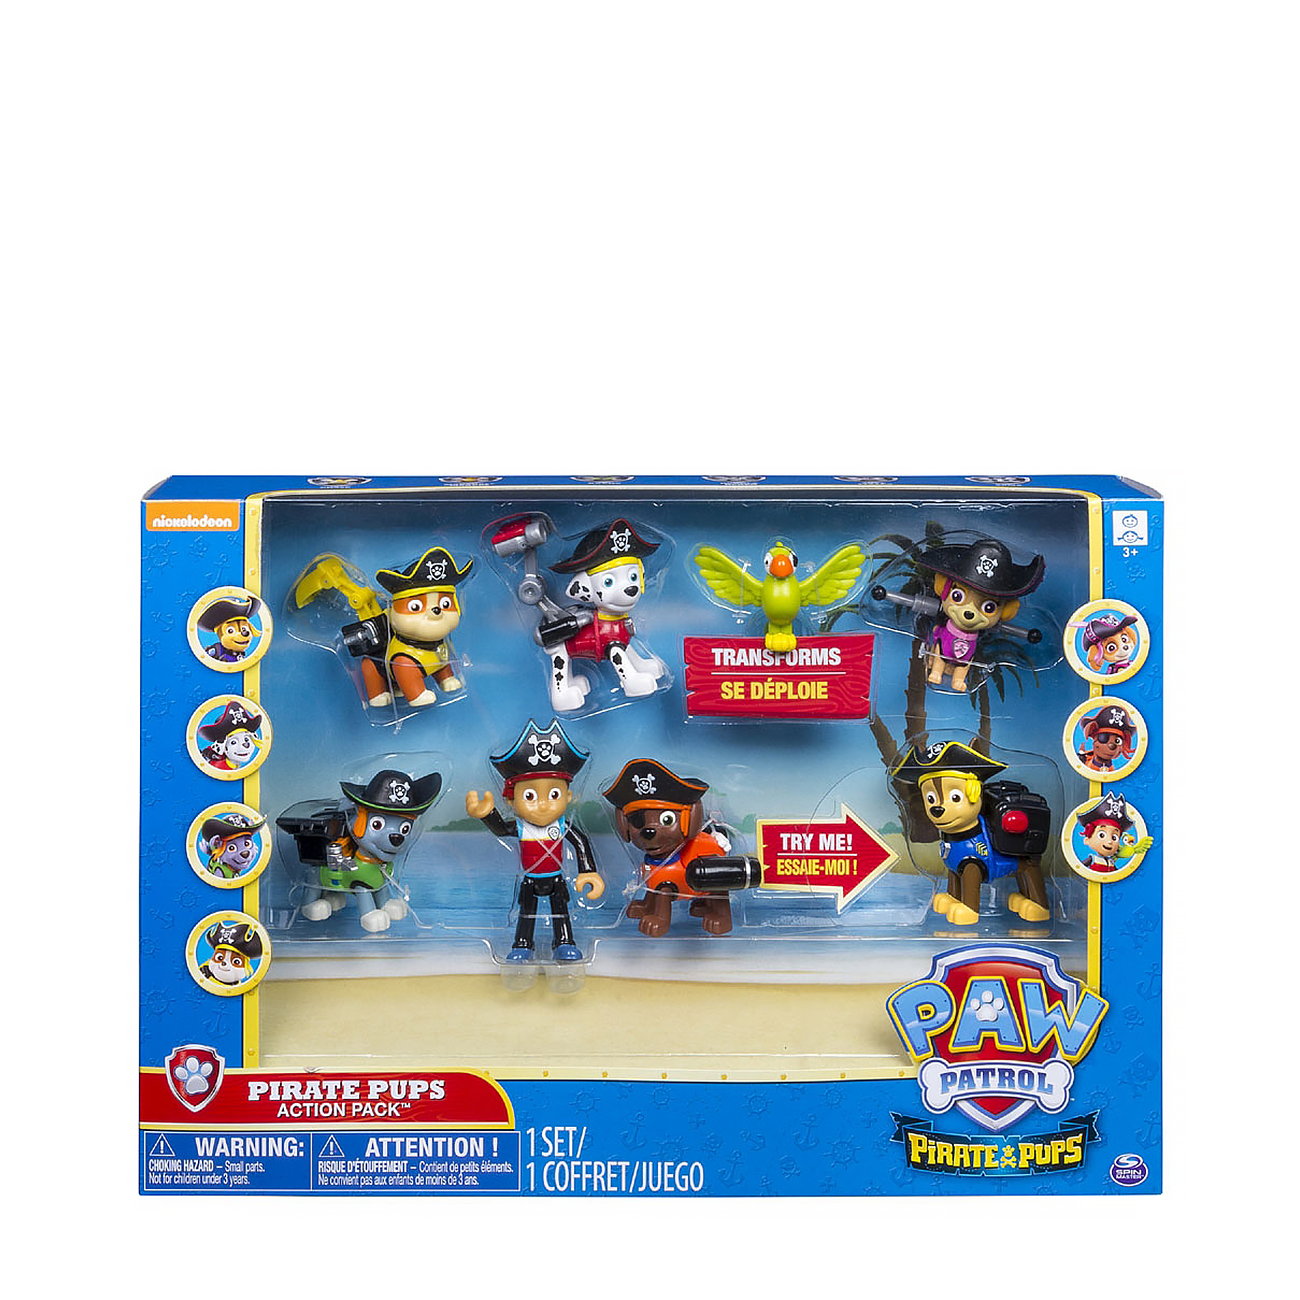 Pirate Pups Action Pack Gift Set